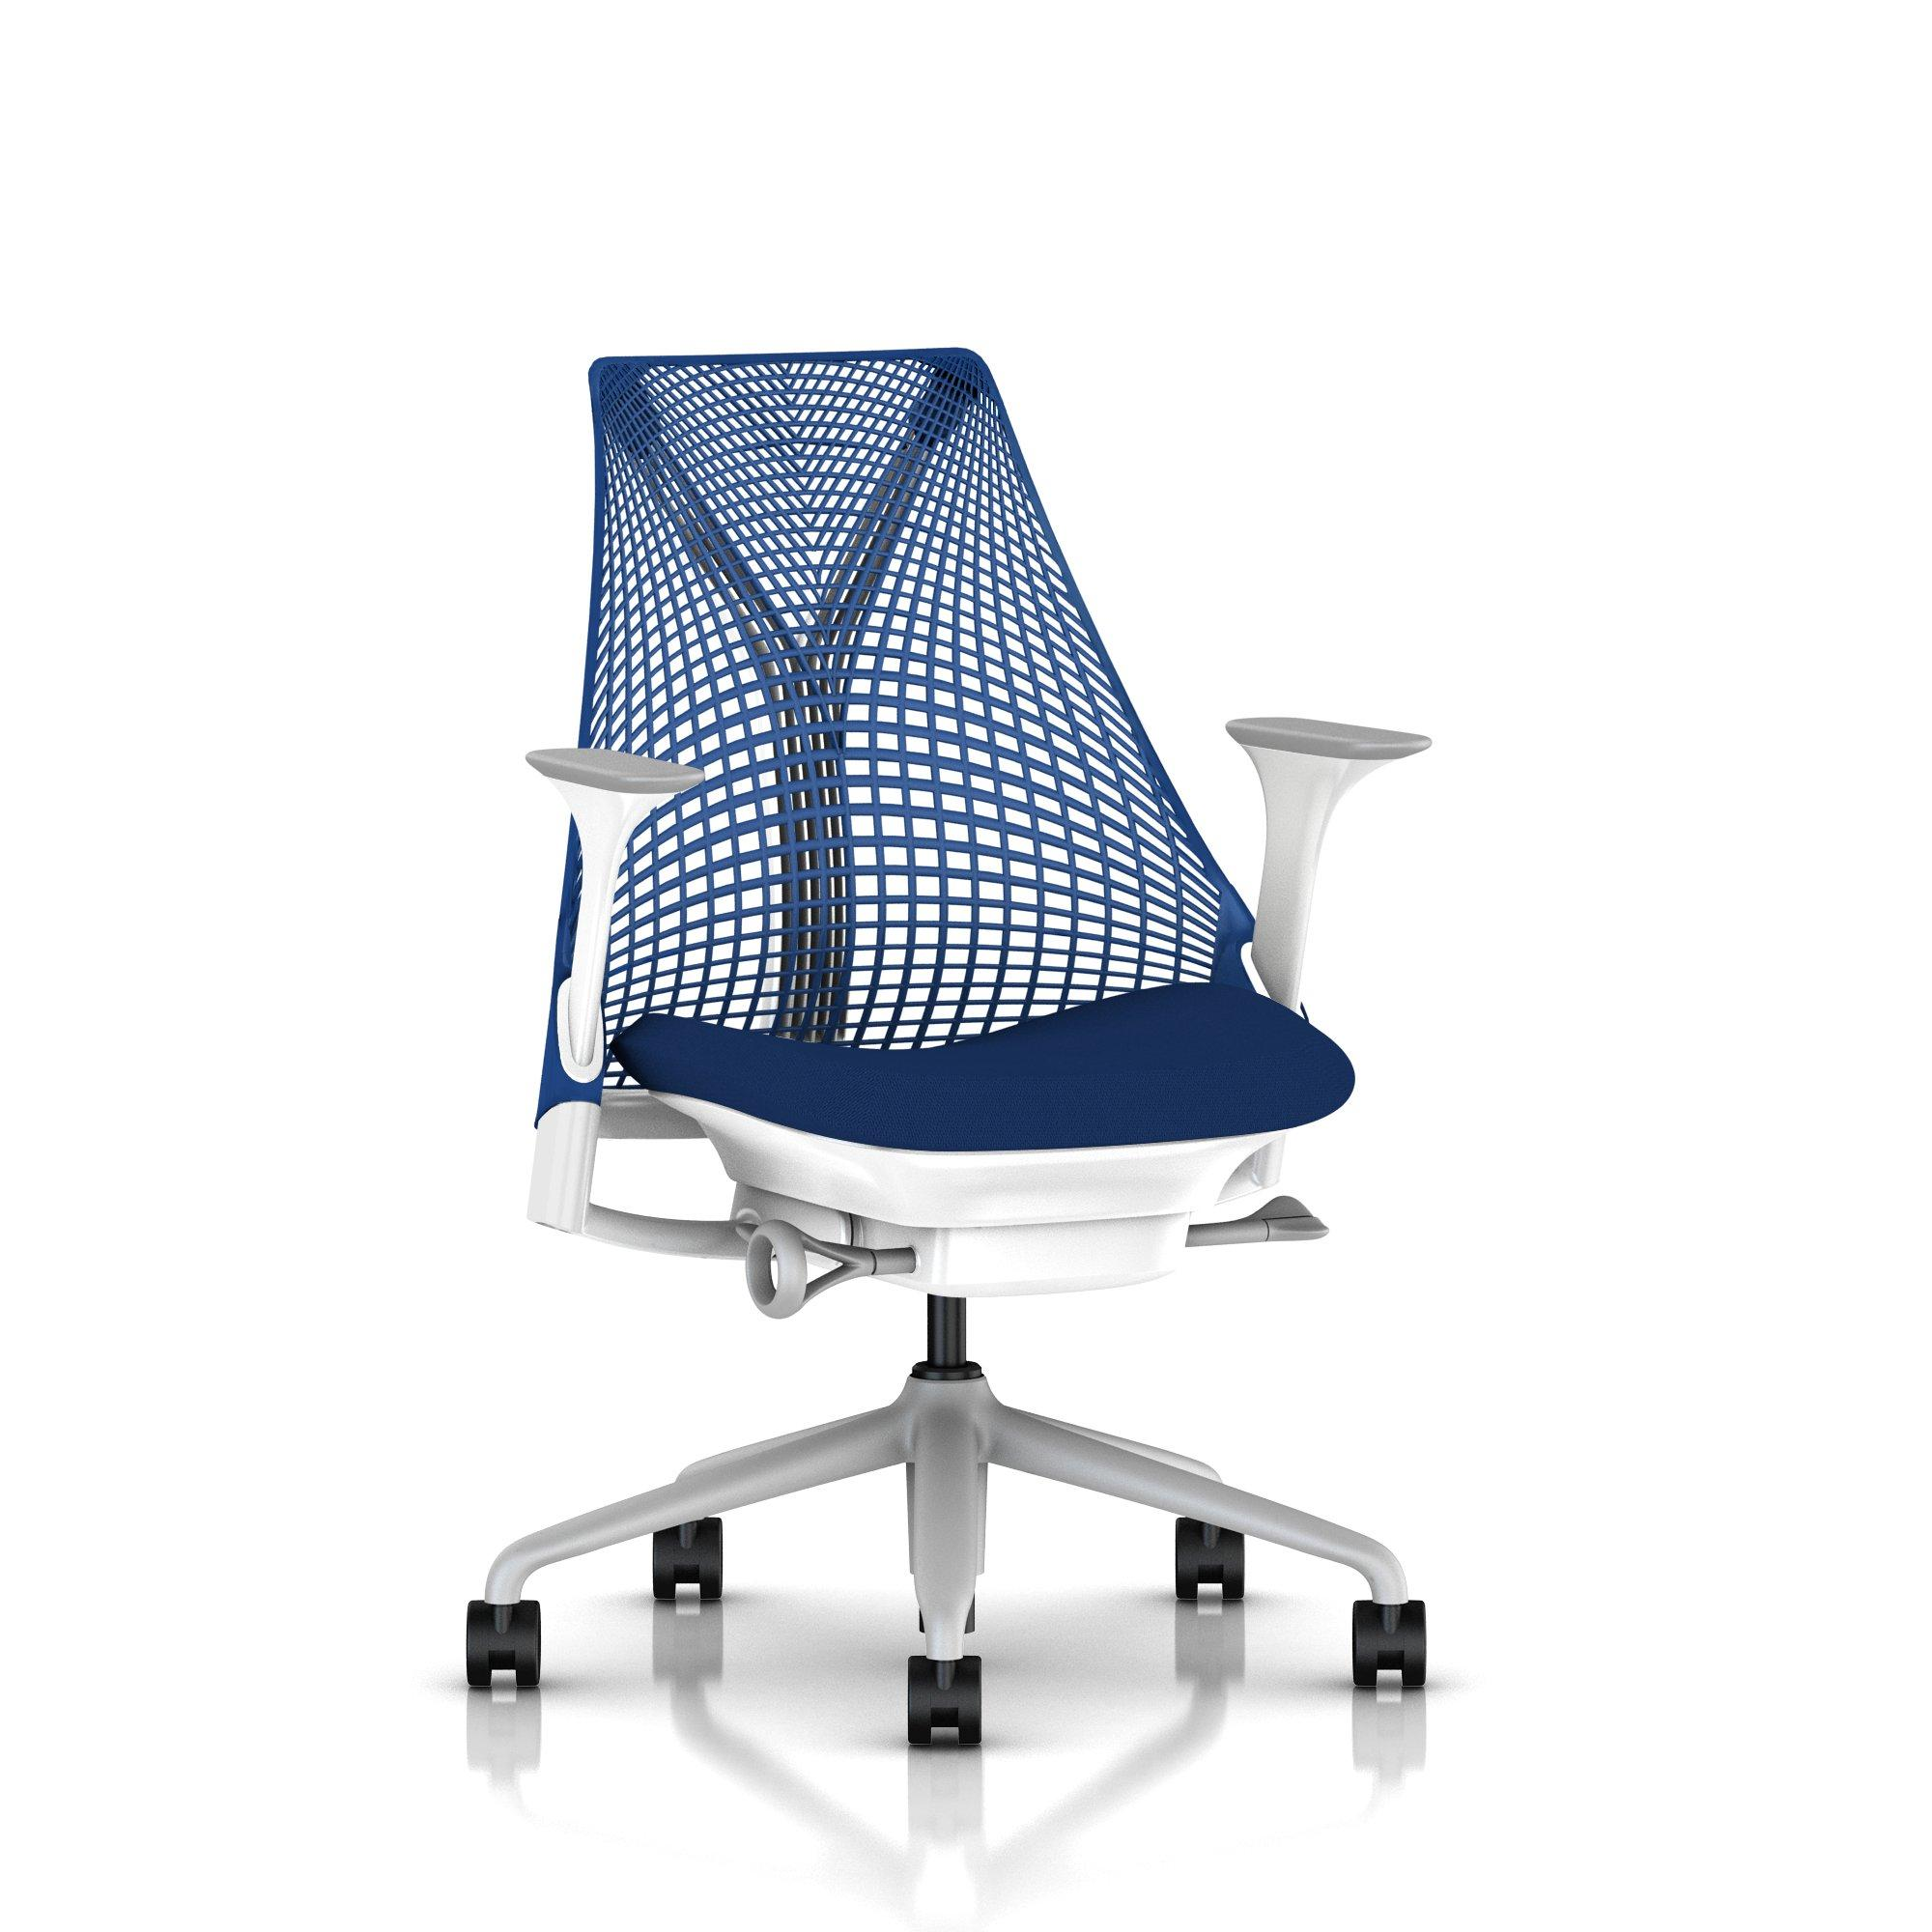 Fog Base with Studio White Y-Tower, Berry Blue Back, Cosmo Pool Fabric Seat, Fog Armpad, Tilt Limiter with Seat Angle Adjustment, Height Adjustable Arms, Adjustable Seat Depth, Non-Adjustable Back Support, 2.5-inch Standard Carpet Casters